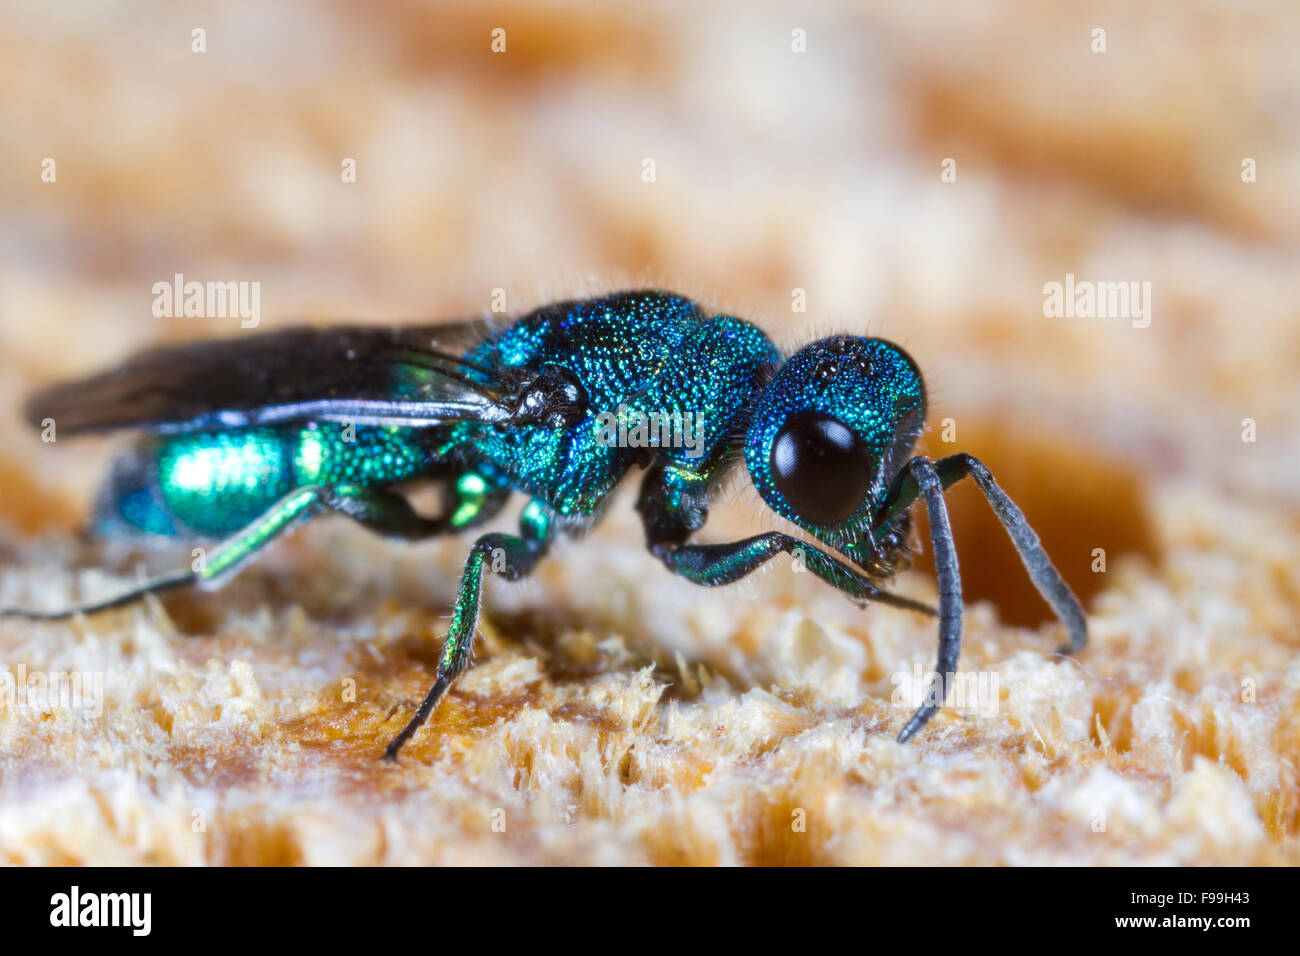 Wasp Stock Photos & Wasp Stock Images - Alamy